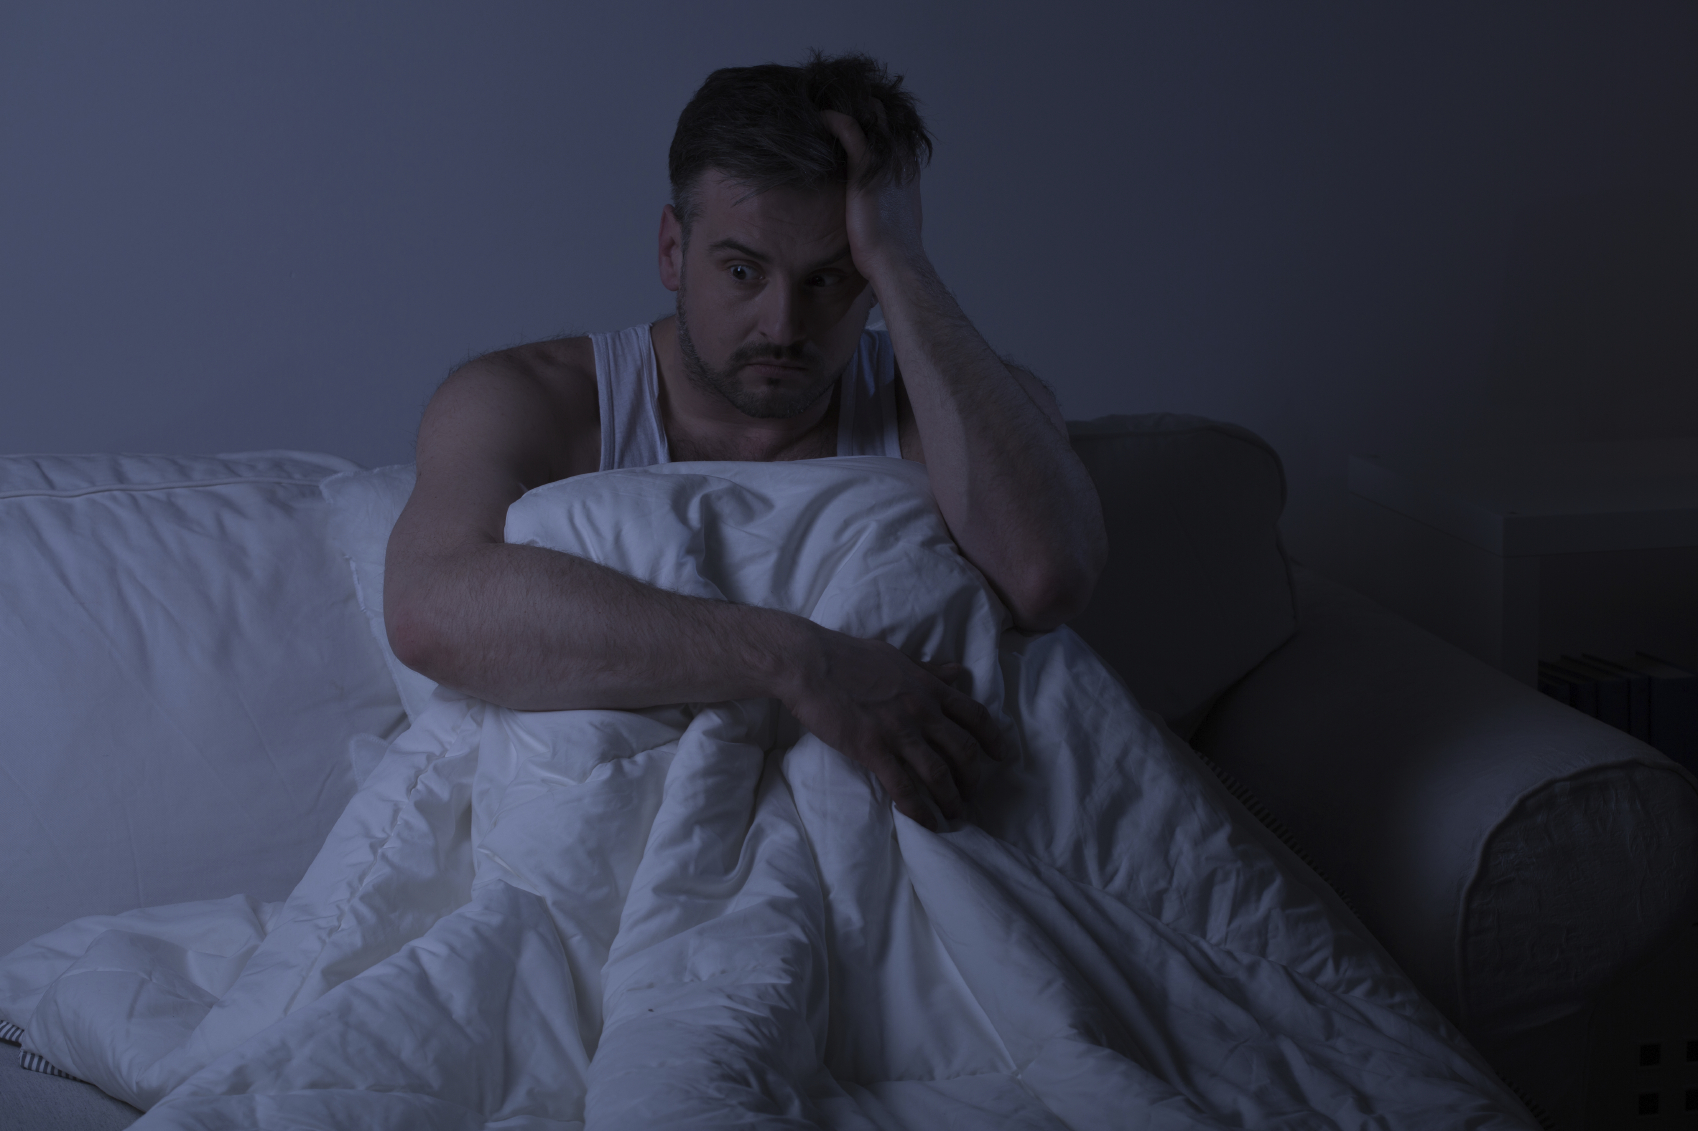 Mature man with insomnia sitting in the bed